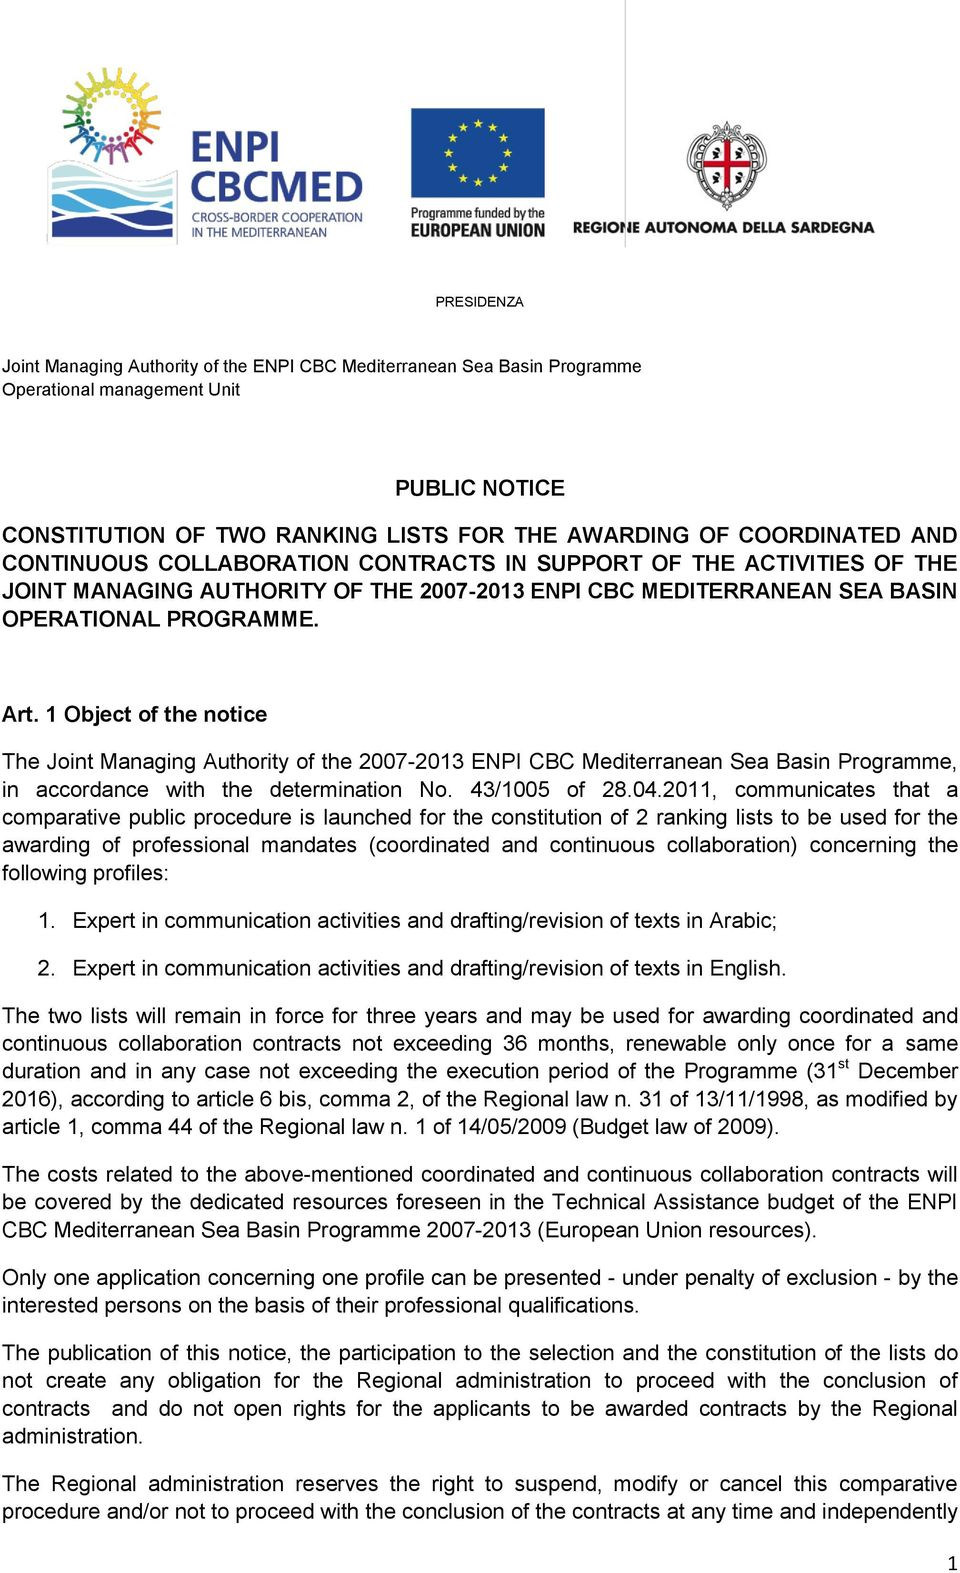 1 Object of the notice The Joint Managing Authority of the 2007-2013 ENPI CBC Mediterranean Sea Basin Programme, in accordance with the determination No. 43/1005 of 28.04.